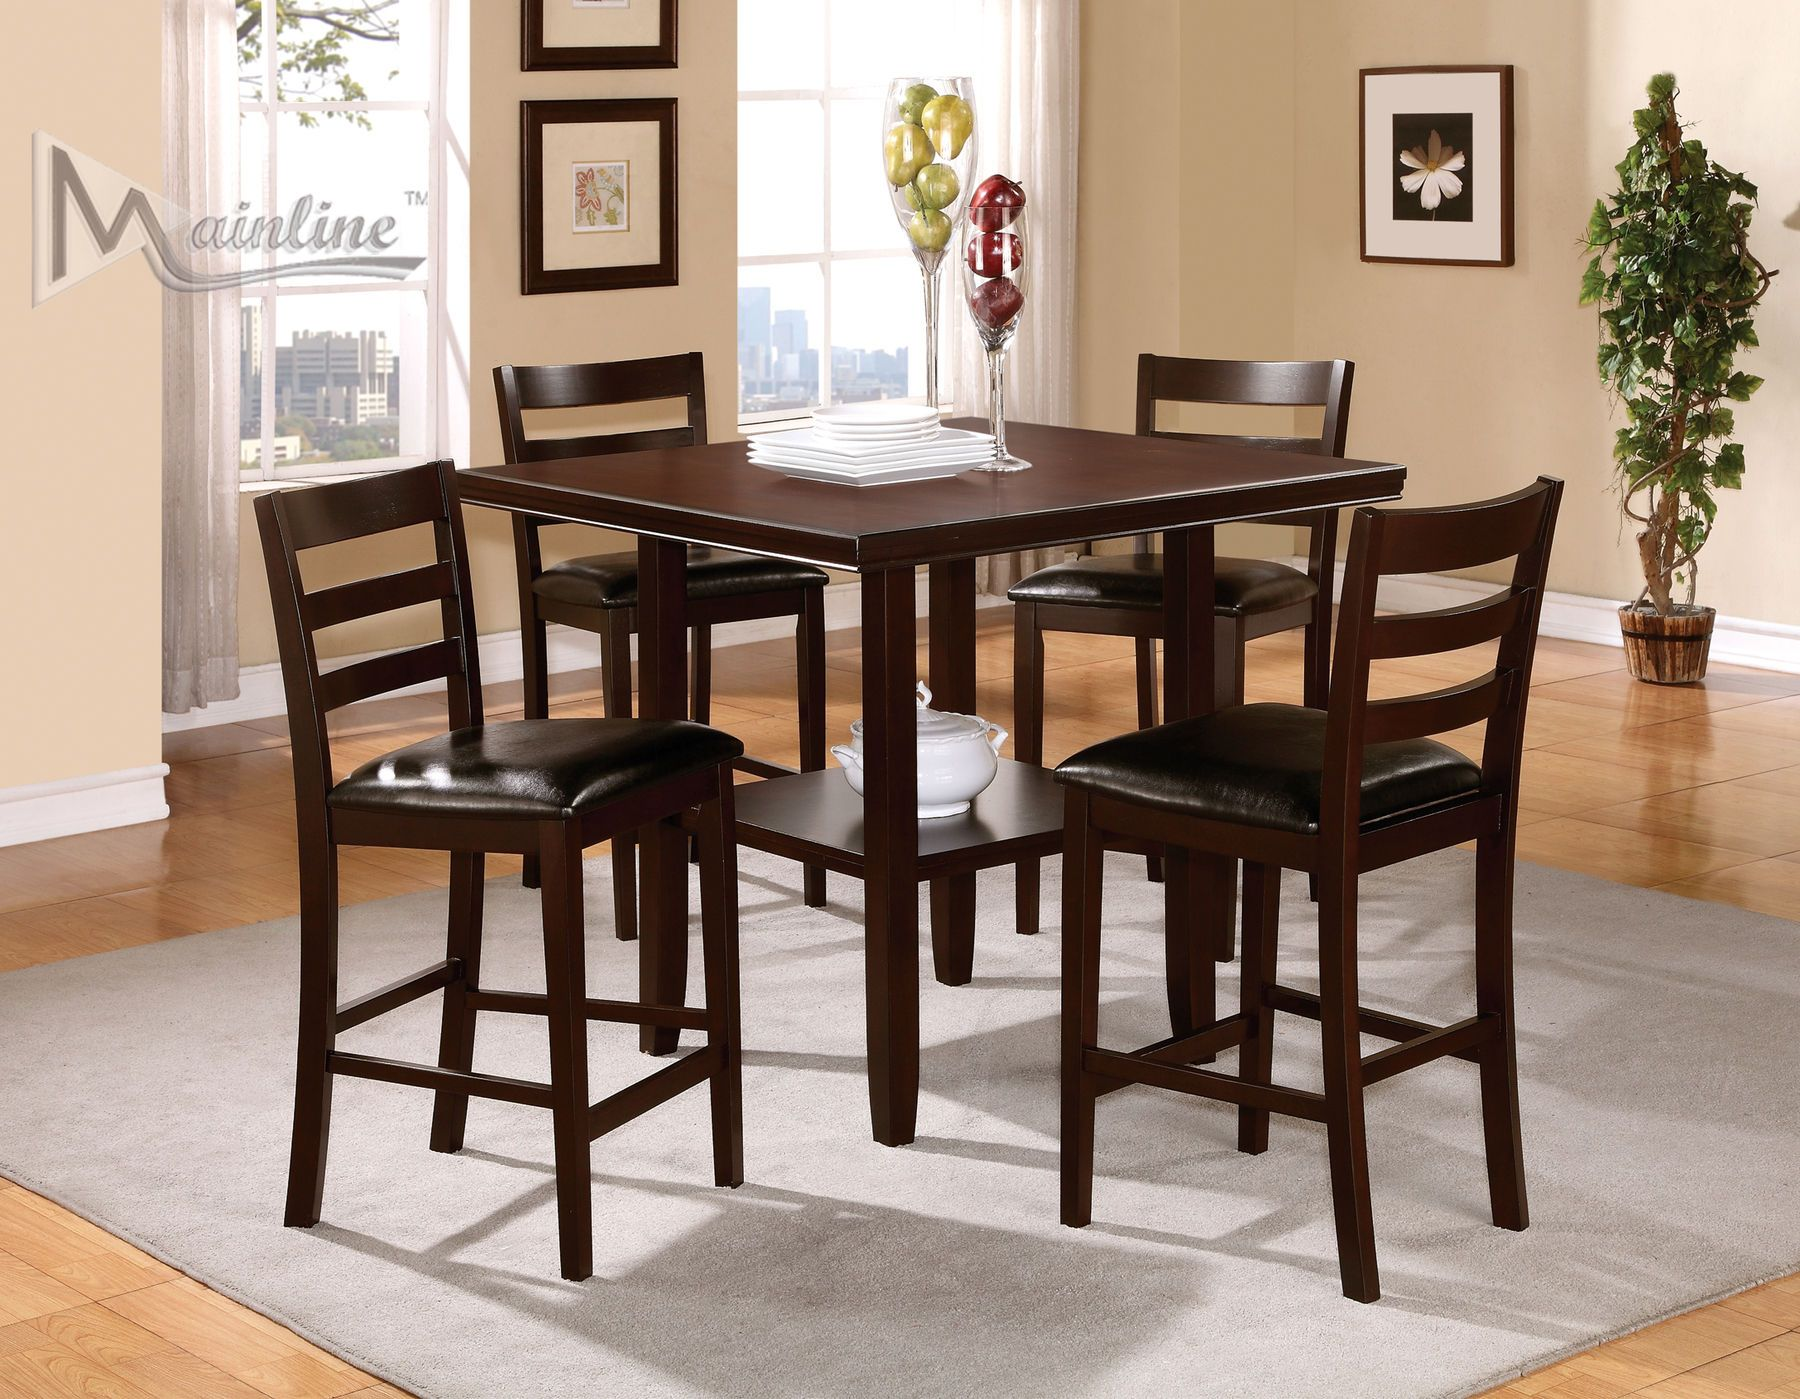 Java Table 4 Chairs 25010 Mainline Inc Counter Height Dining Sets In 2021 Bar Height Dining Table Counter Height Dining Sets Dining Table In Kitchen Counter height tables and chairs sets